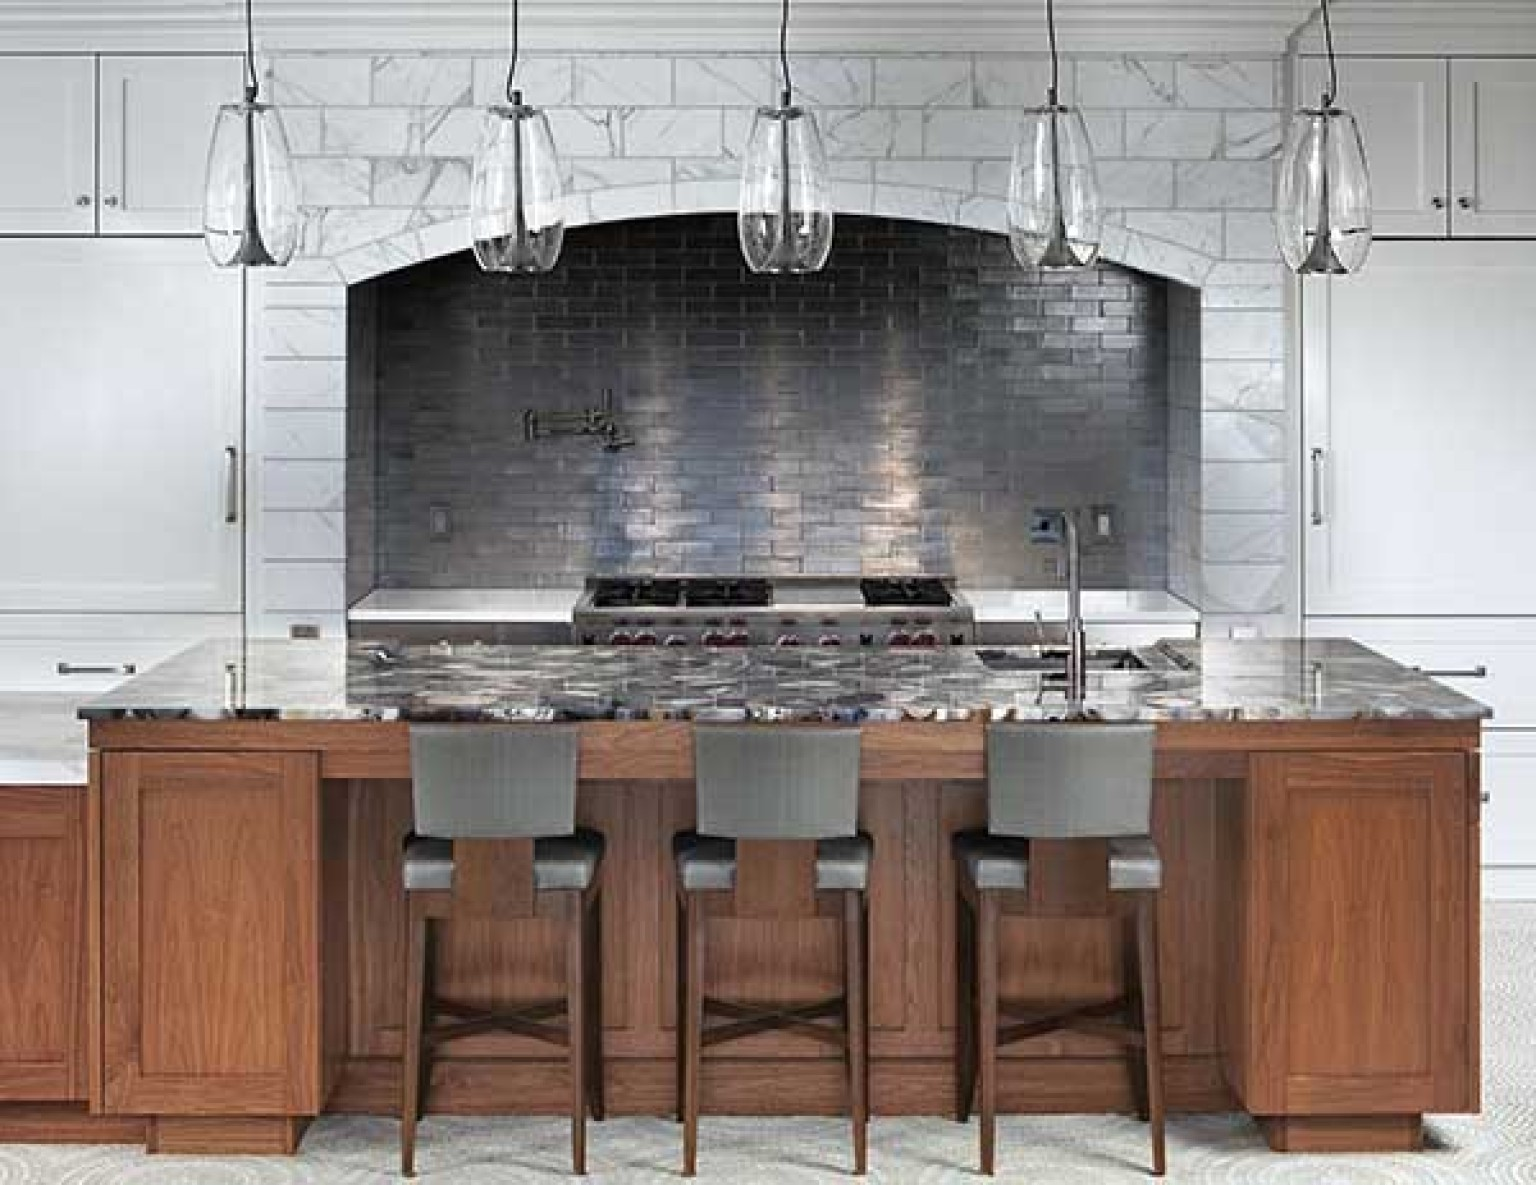 Luxury Kitchen Designs 2013 7 tips to get the best value in a luxury kitchen | huffpost